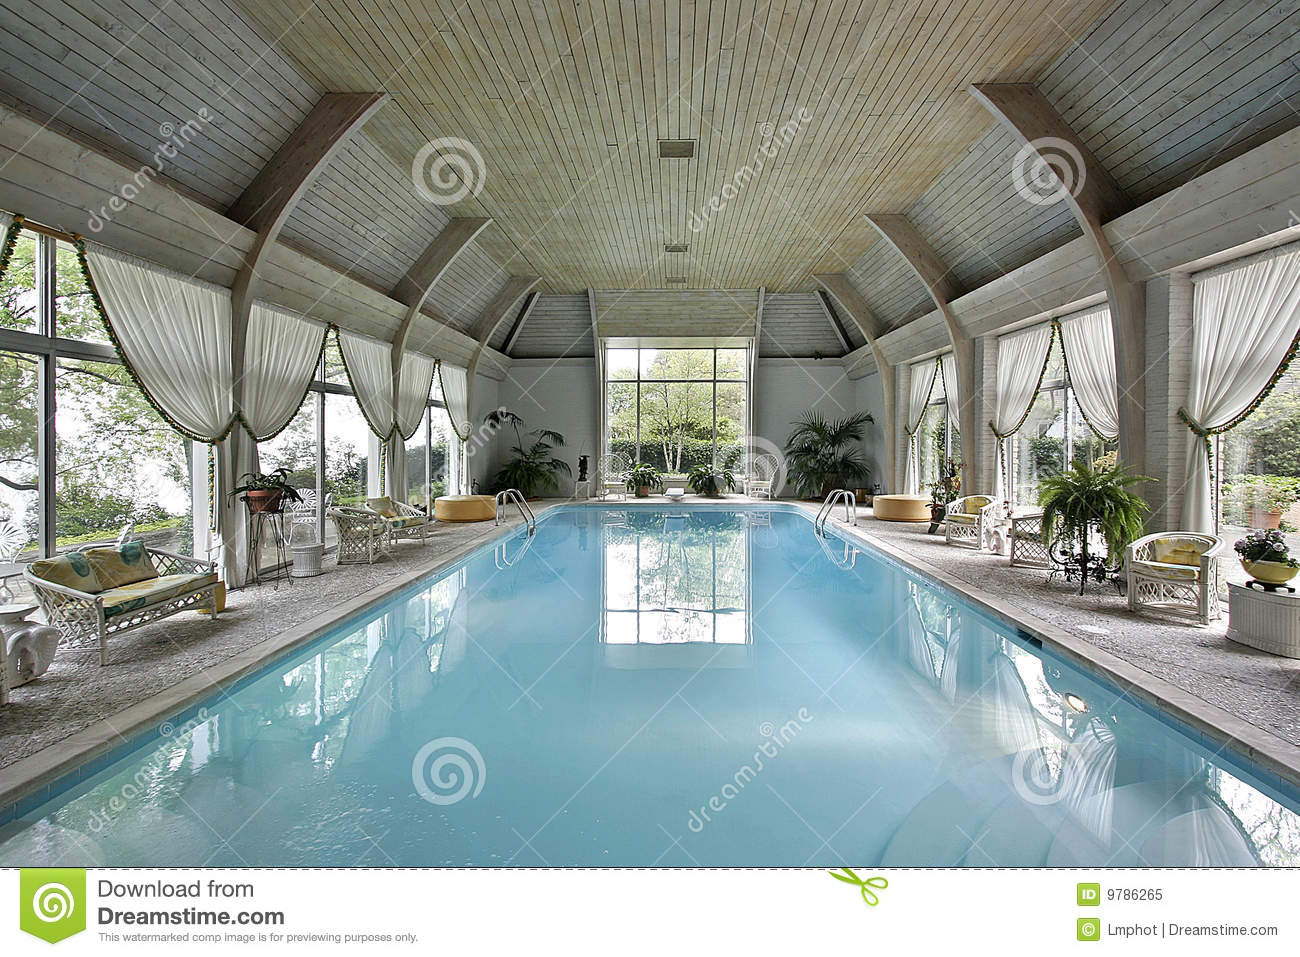 Indoor Wedding Venue Royalty Free Stock Photo: Large Indoor Swimming Pool Stock Image. Image Of Spacious